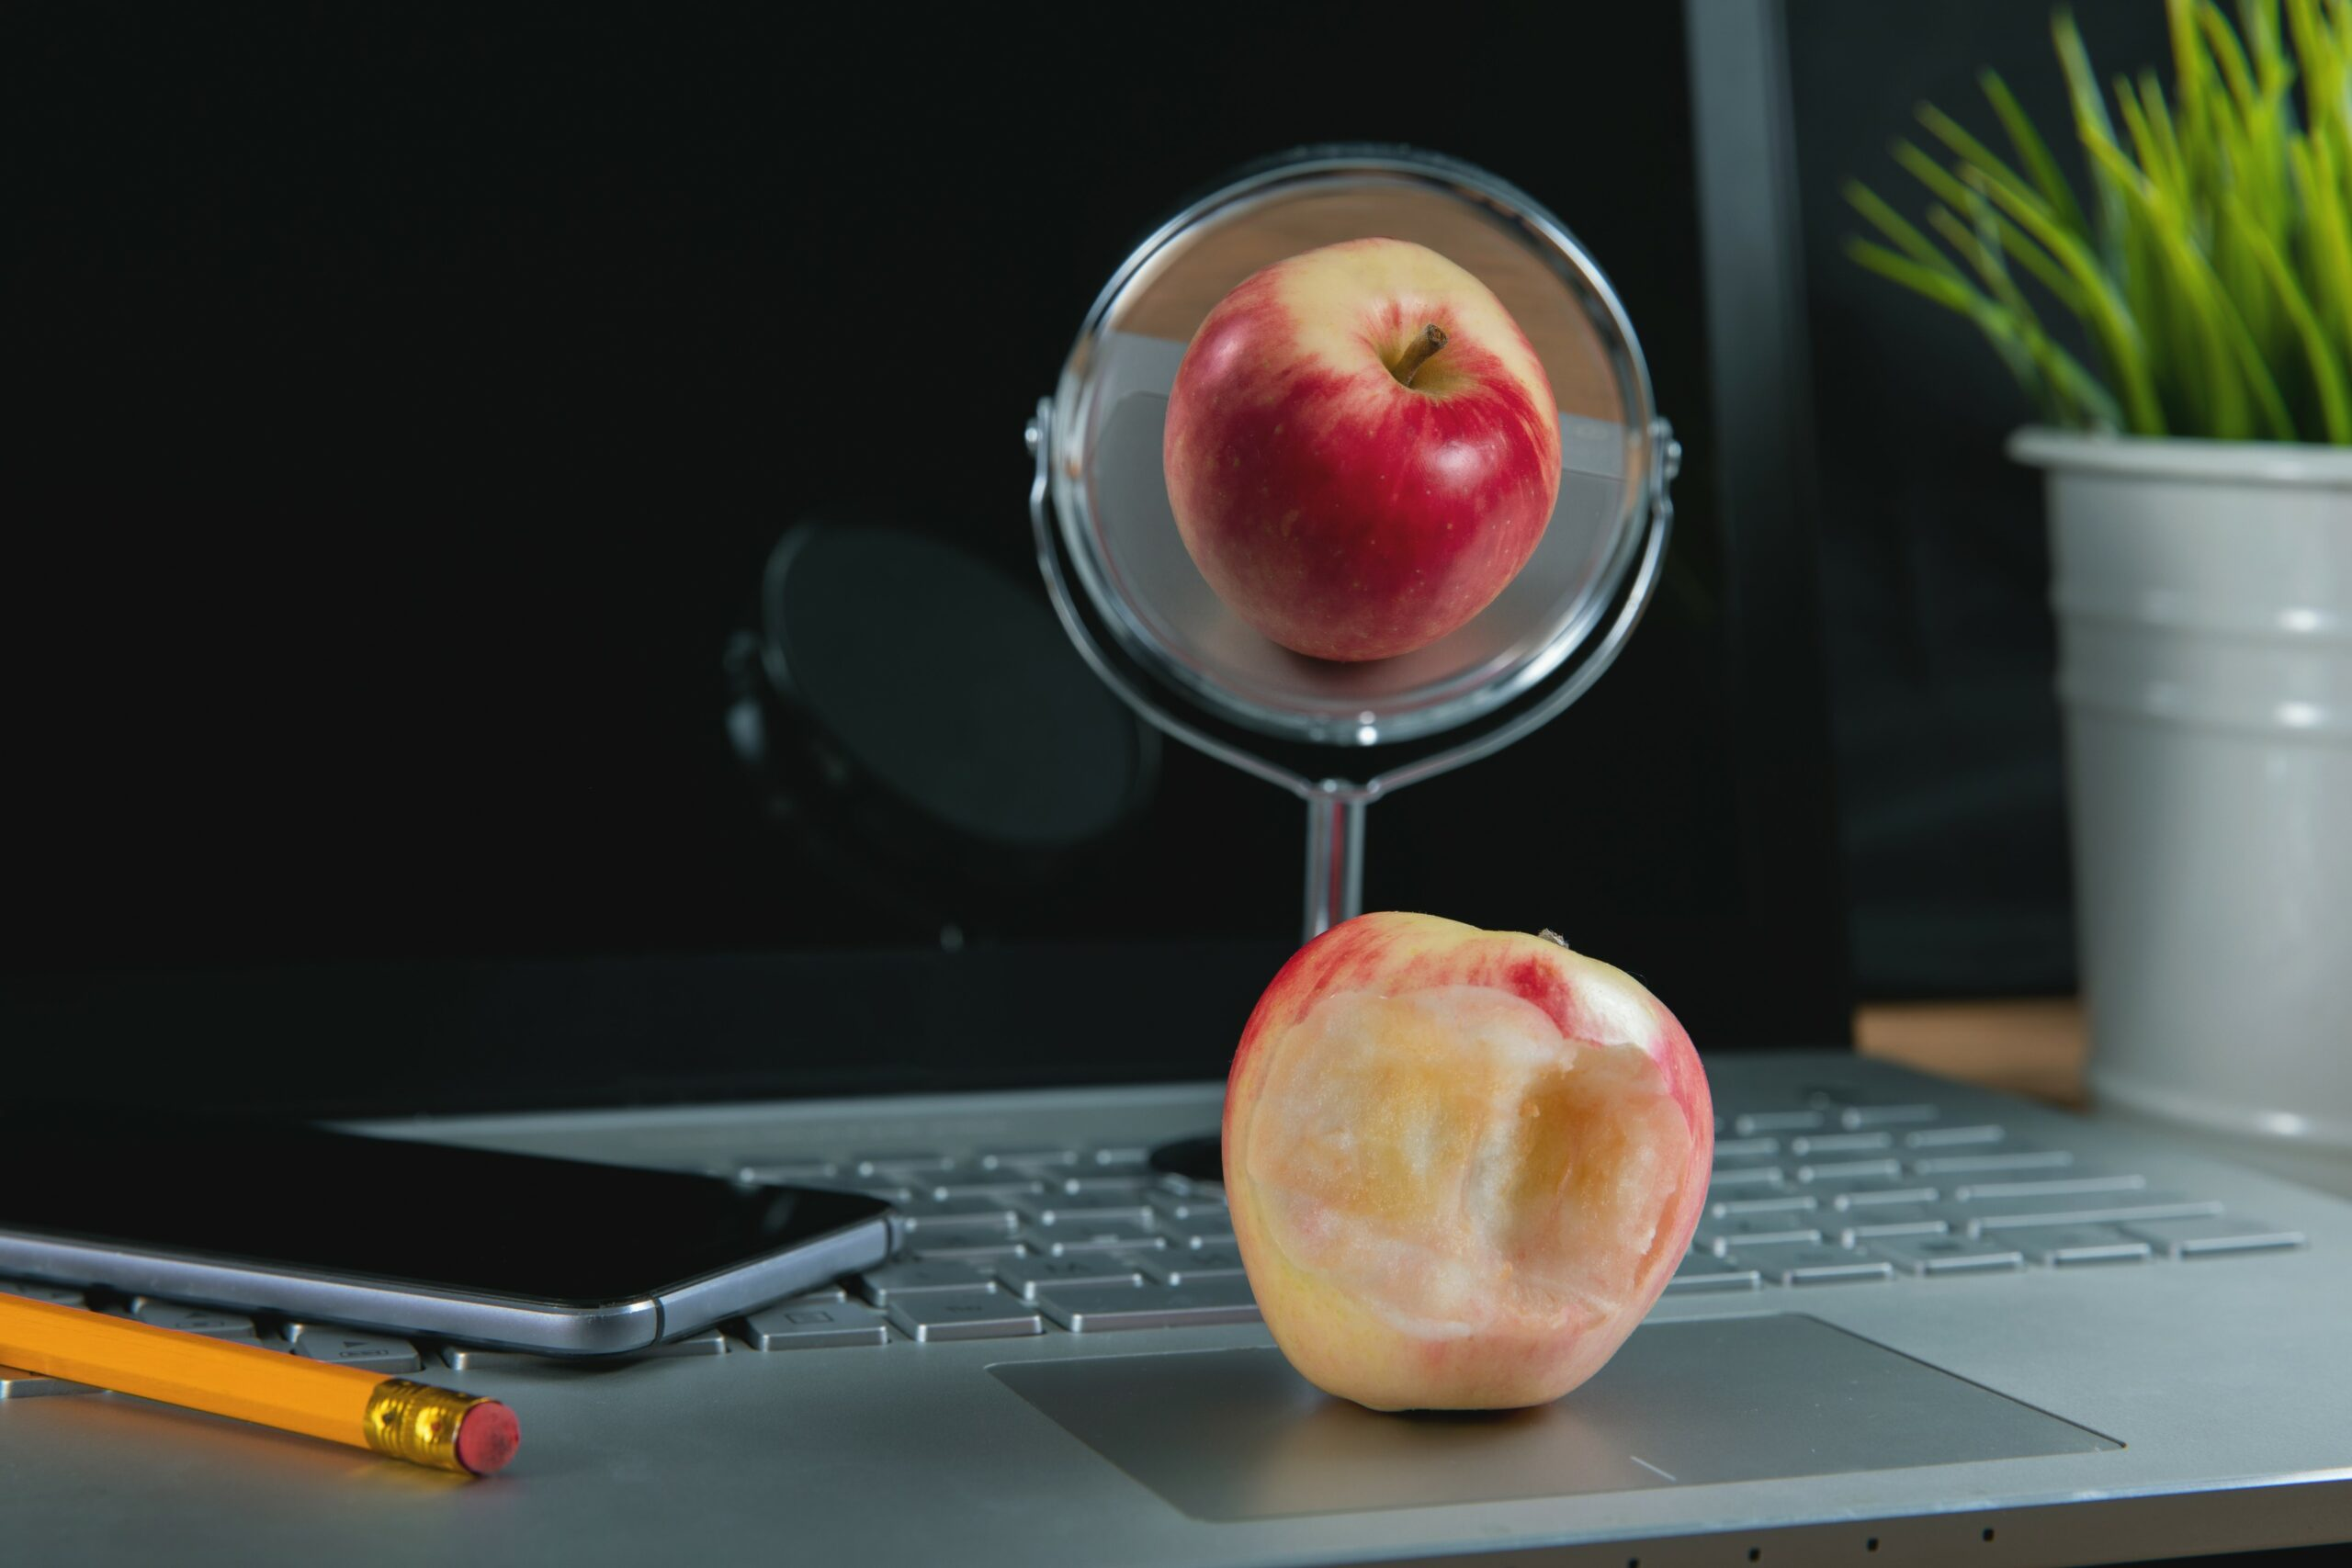 Beauty is in the eye of the webcam: Sculpting an identity in the online world